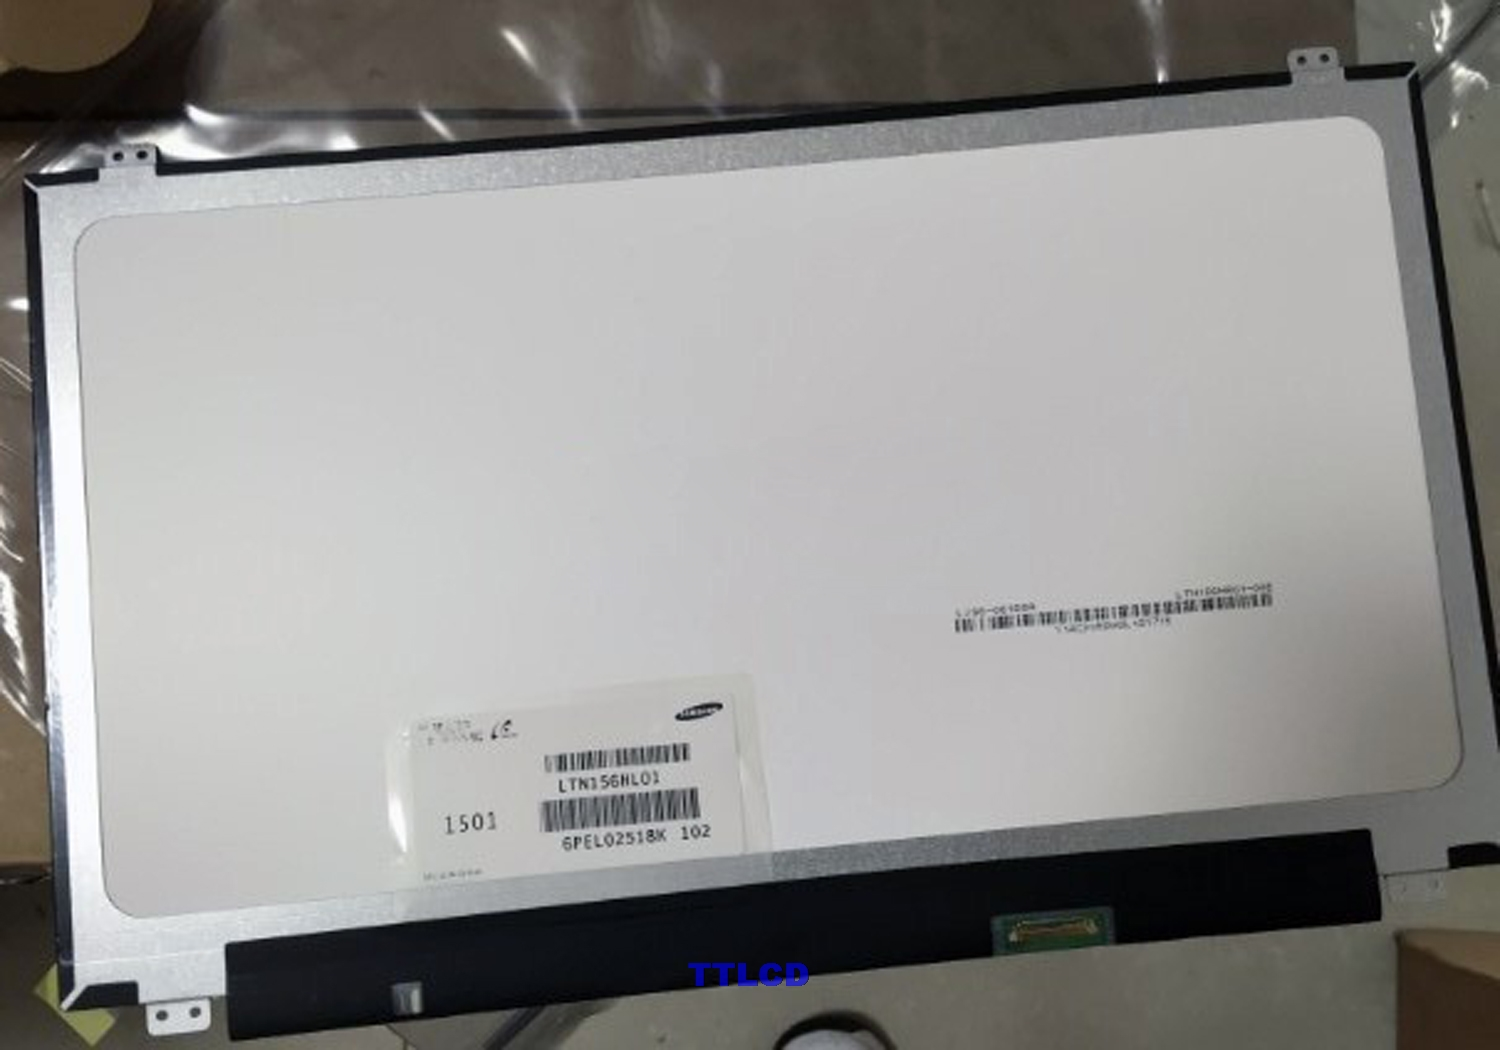 QuYing Laptop LCD Screen Compatible Model LTN156HL01 LTN156HL02-201 LTN156HL06-C01 LTN156HL07-401 LTN156HL09-401 N156HCE-EBA quying laptop lcd screen compatible model ltn156hl01 ltn156hl02 201 ltn156hl06 c01 ltn156hl07 401 ltn156hl09 401 n156hce eba